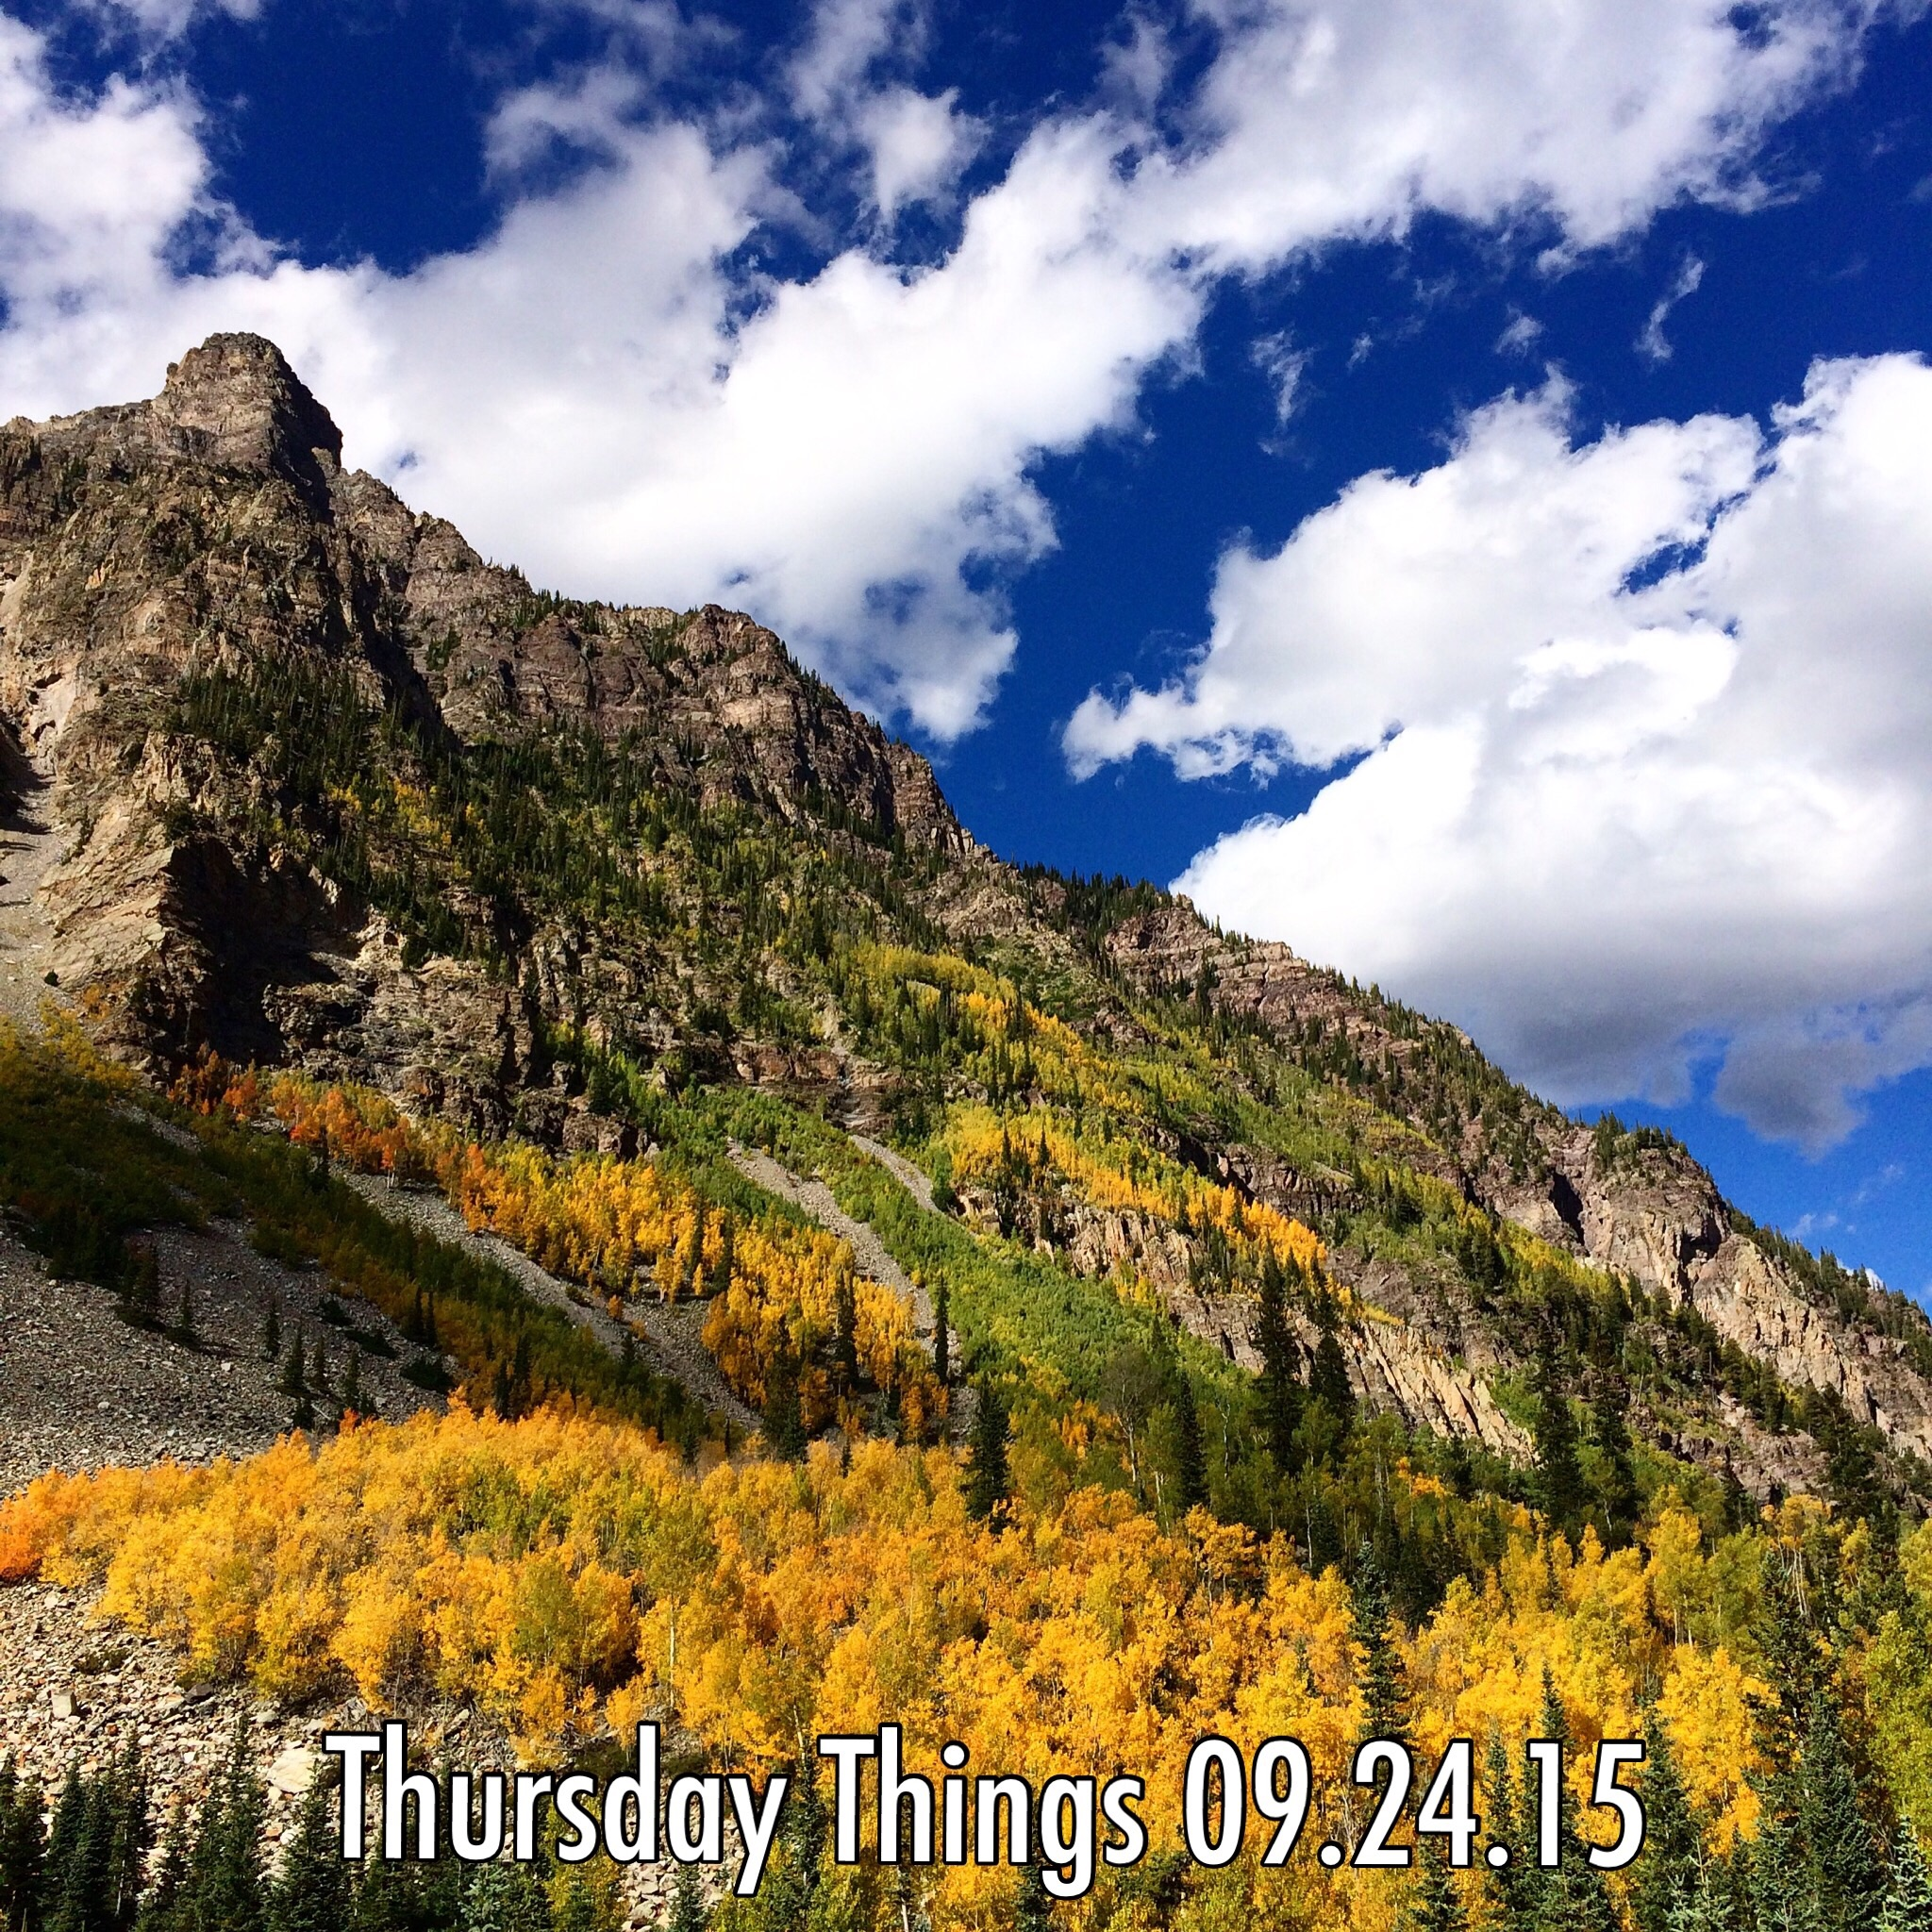 Thursday Things 09.24.15